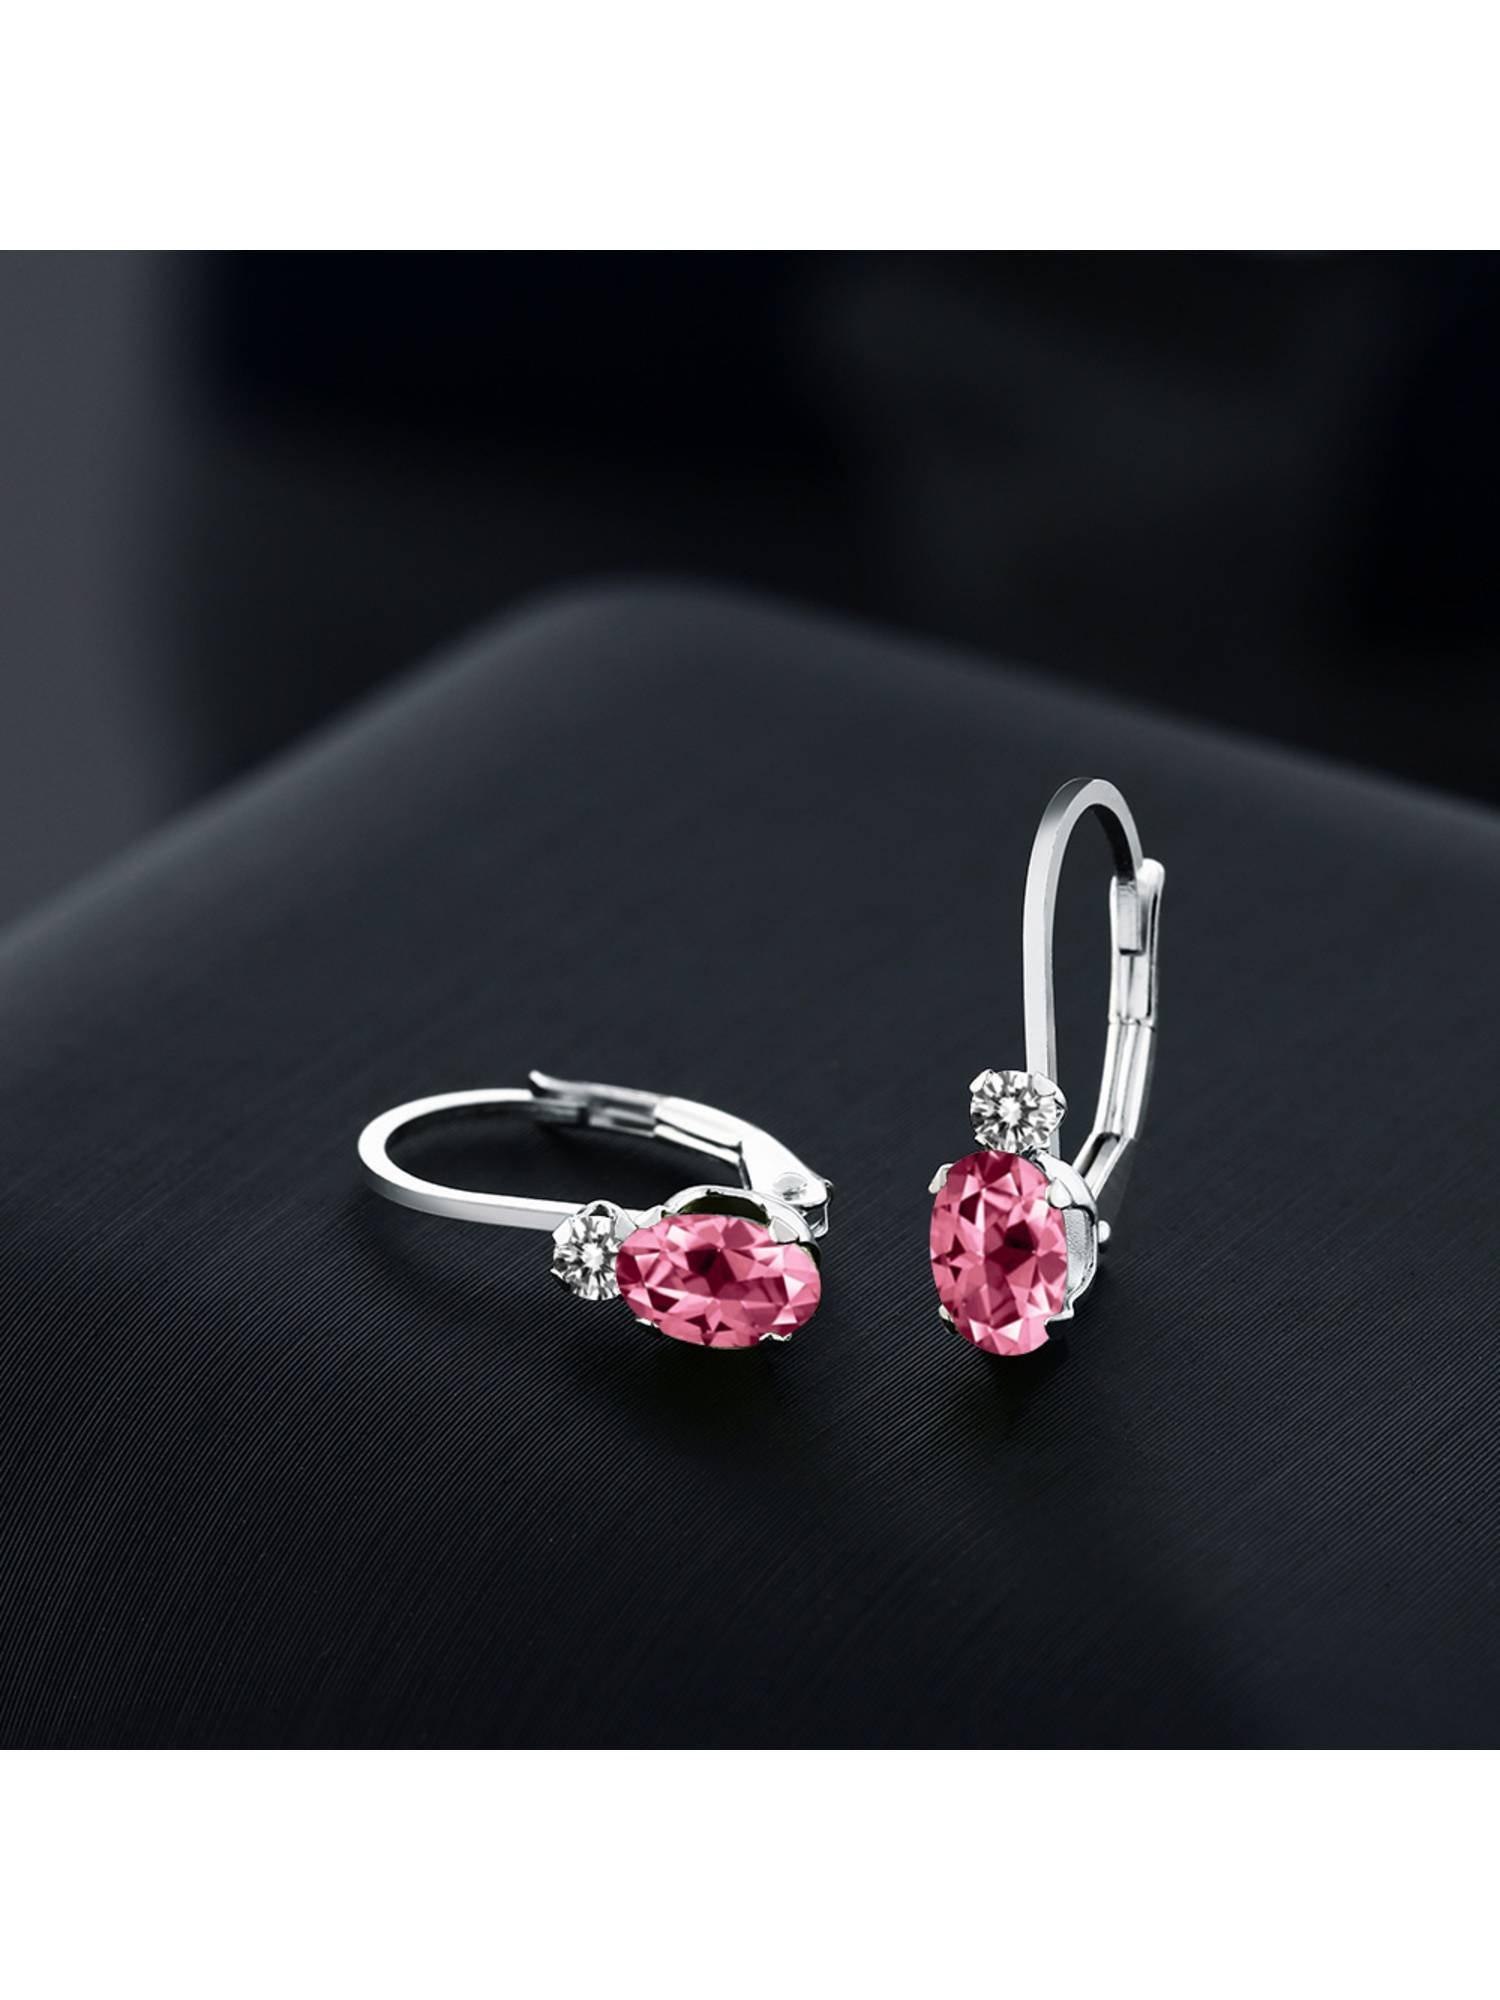 925 Sterling Silver Diamond Ring Set with Oval Pink Topaz from Swarovski